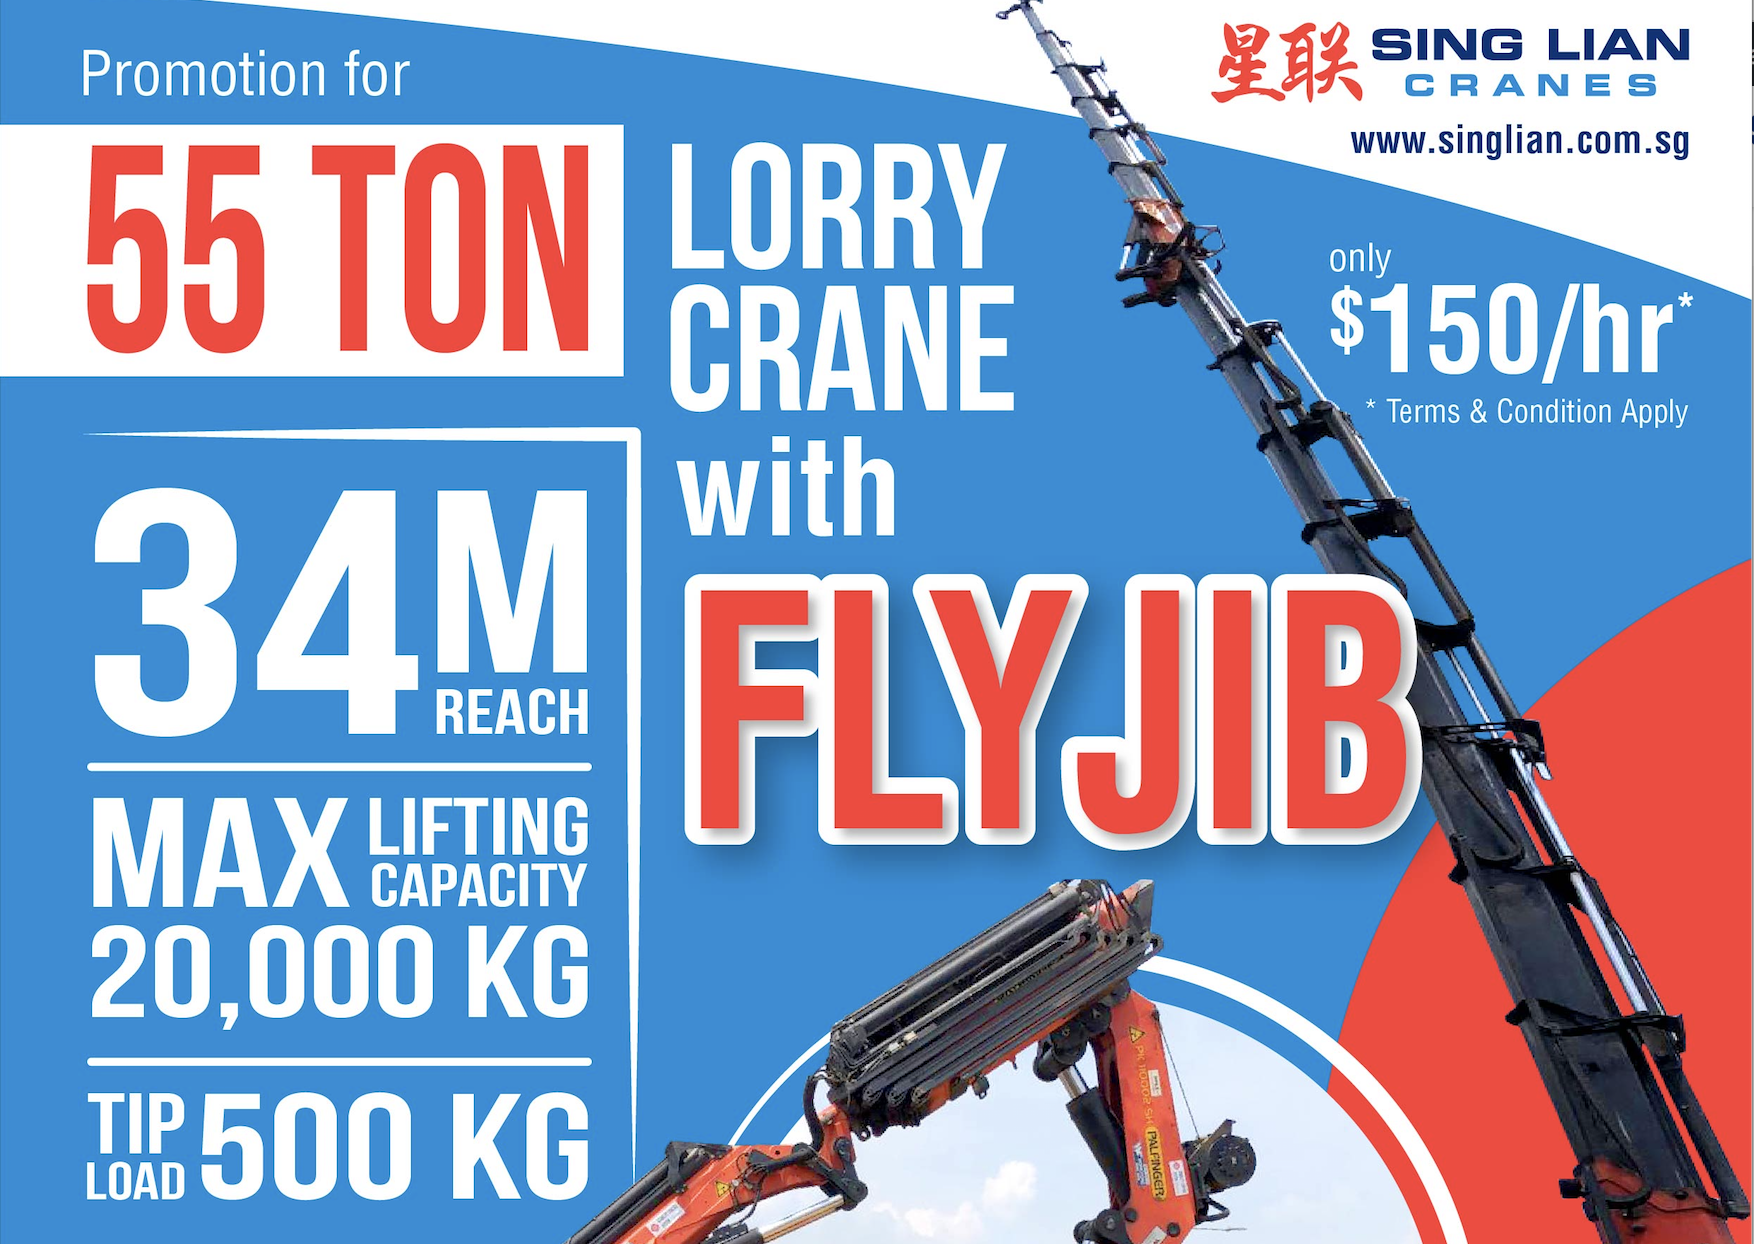 Promotion for 55 Ton Lorry Crane with Flyjib